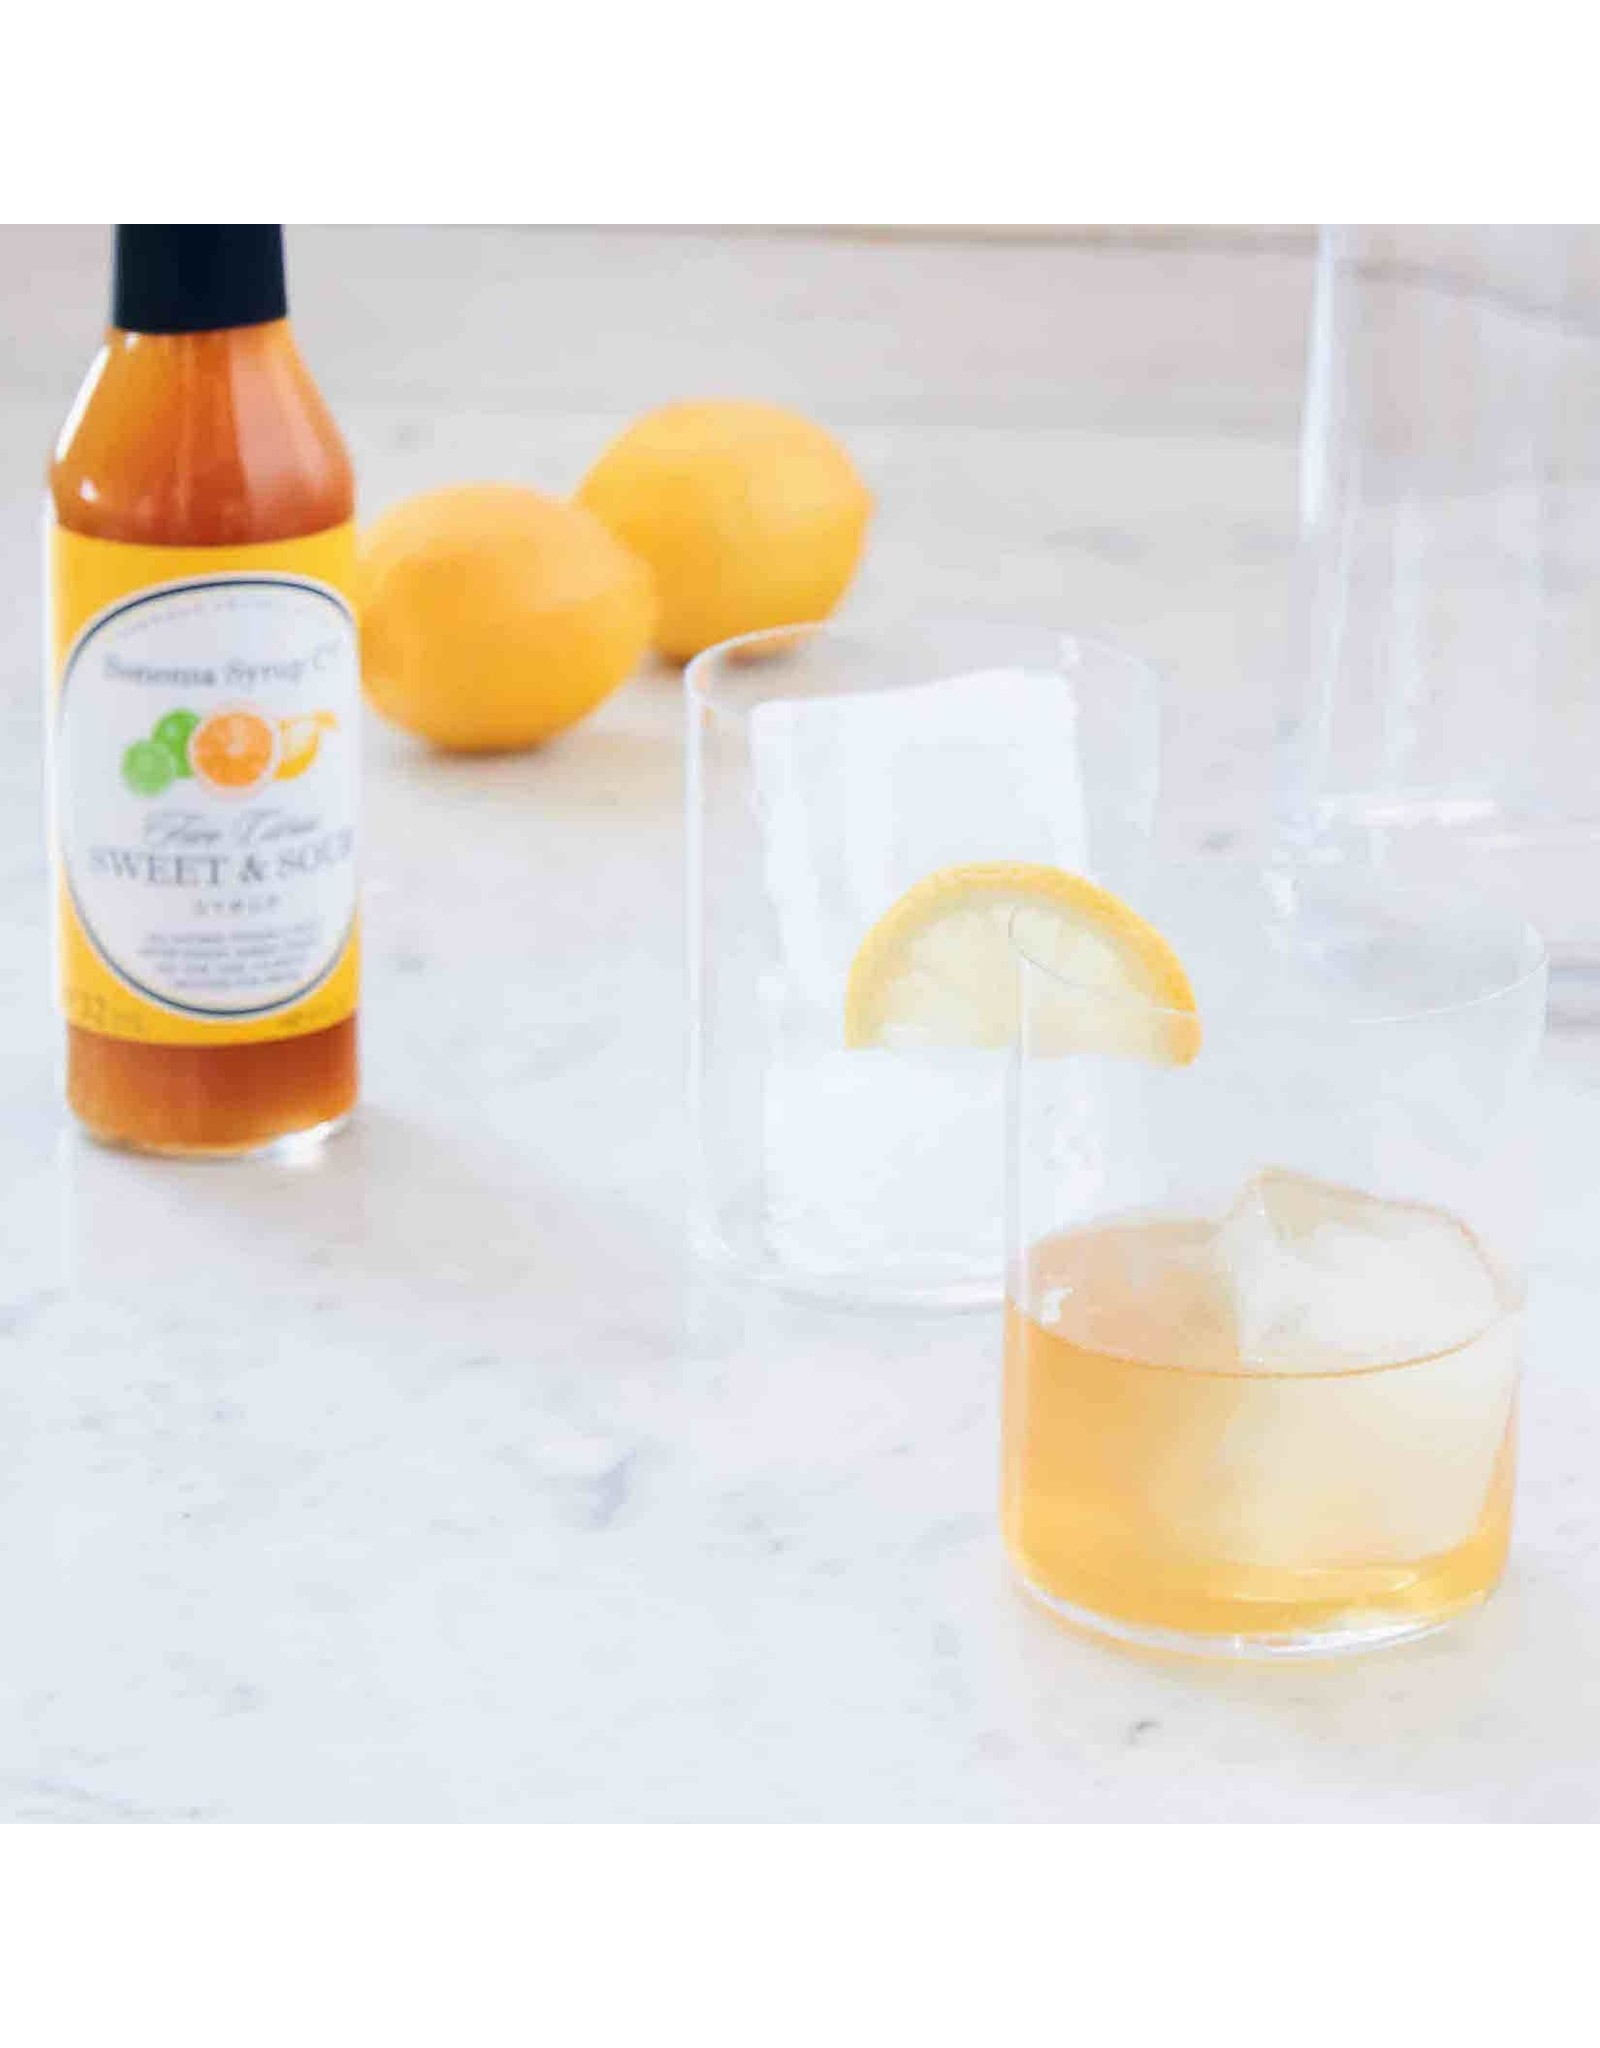 Sonoma Syrup Co Sonoma Syrup Co Five Citrus Sweet & Sour Syrup